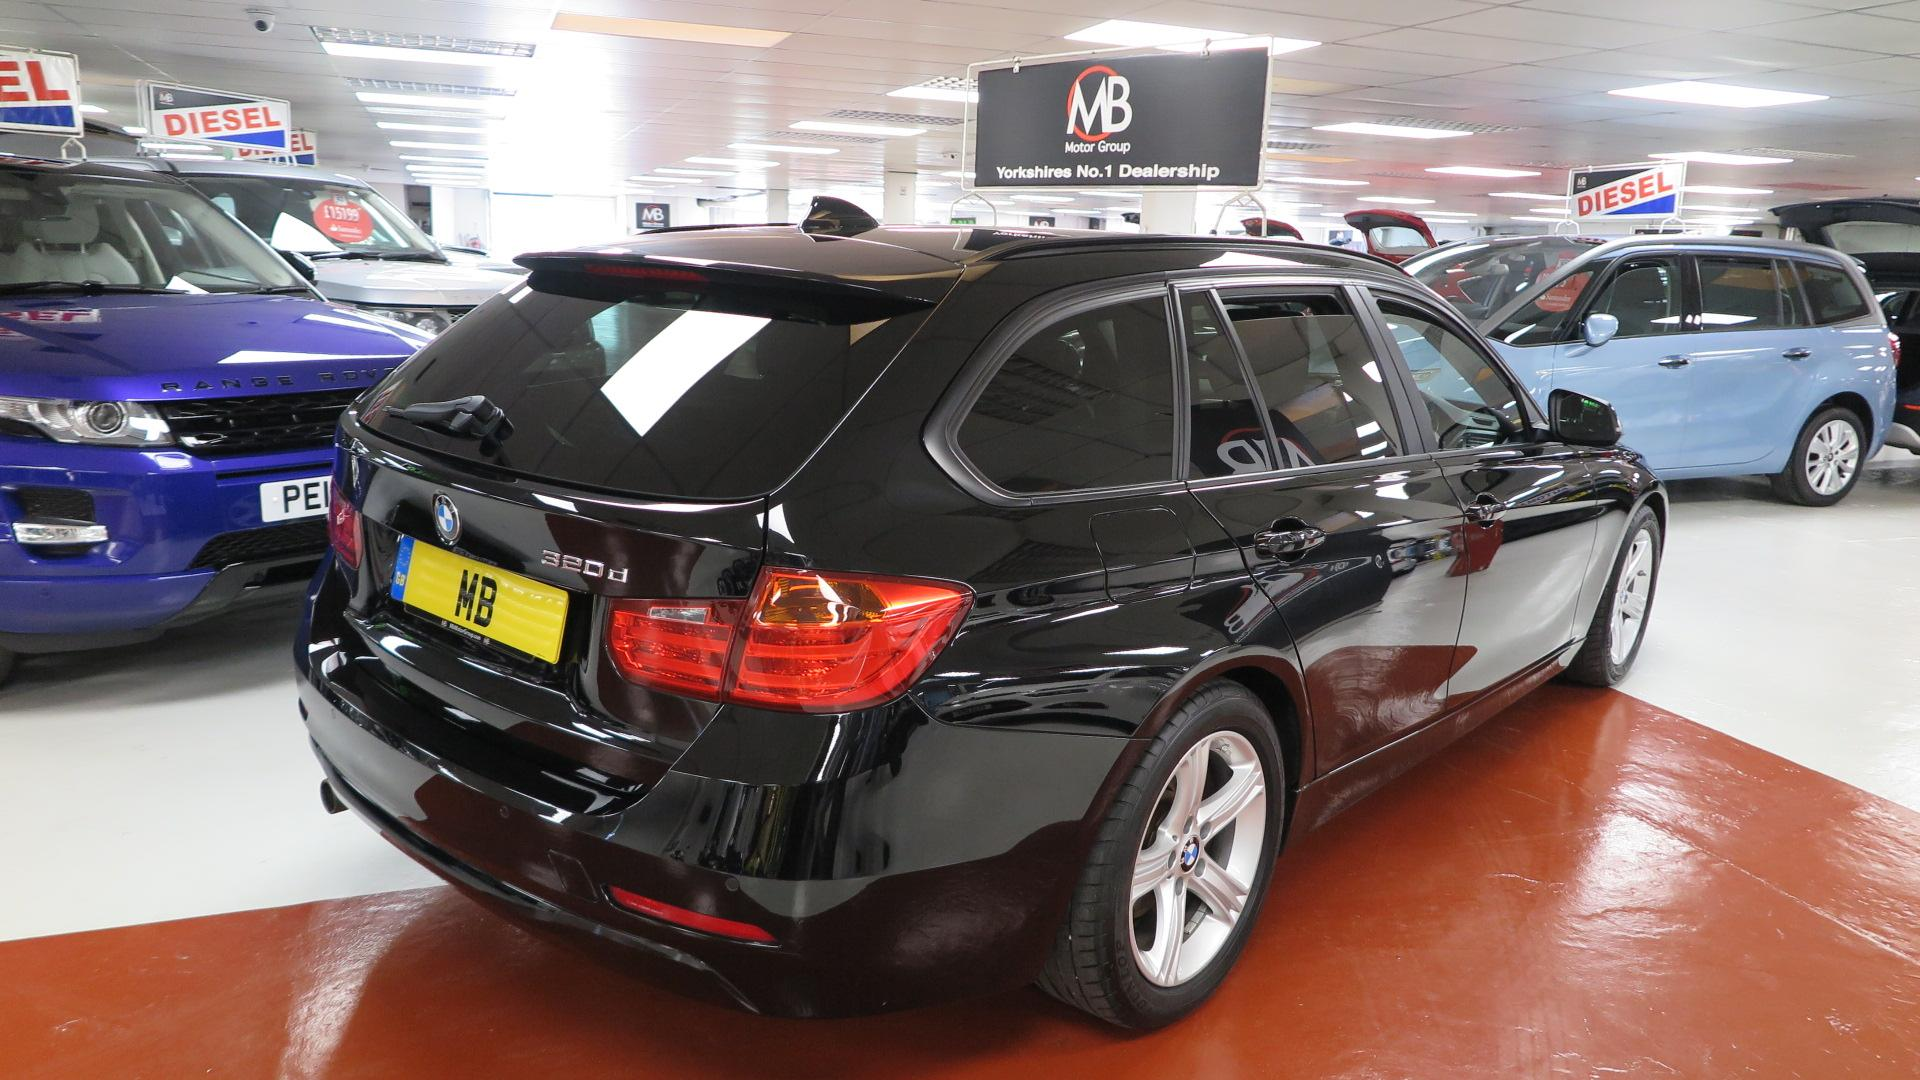 Used BMW 3 Series cars in Leeds